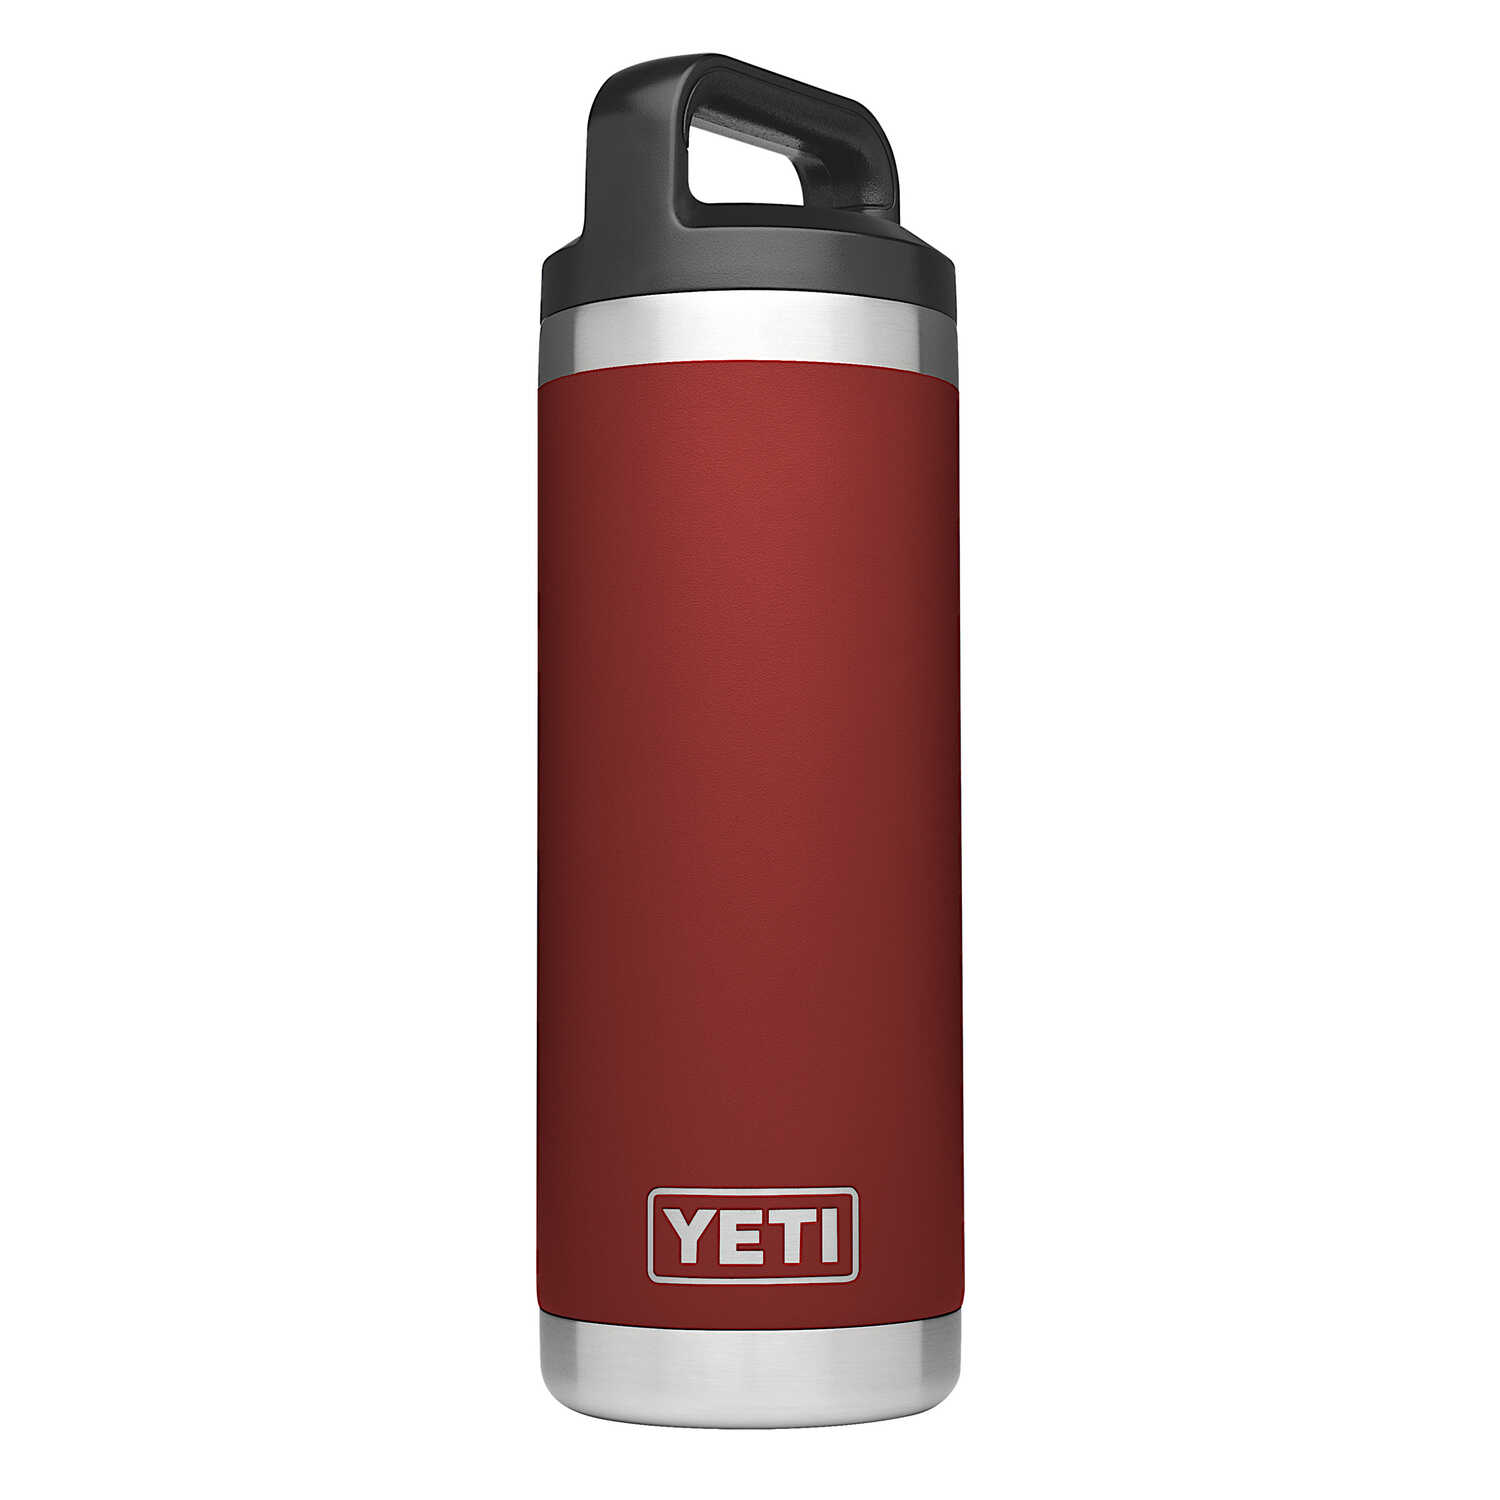 YETI  Rambler  Brick Red  Stainless Steel  Insulated Bottle  BPA Free 18 oz.